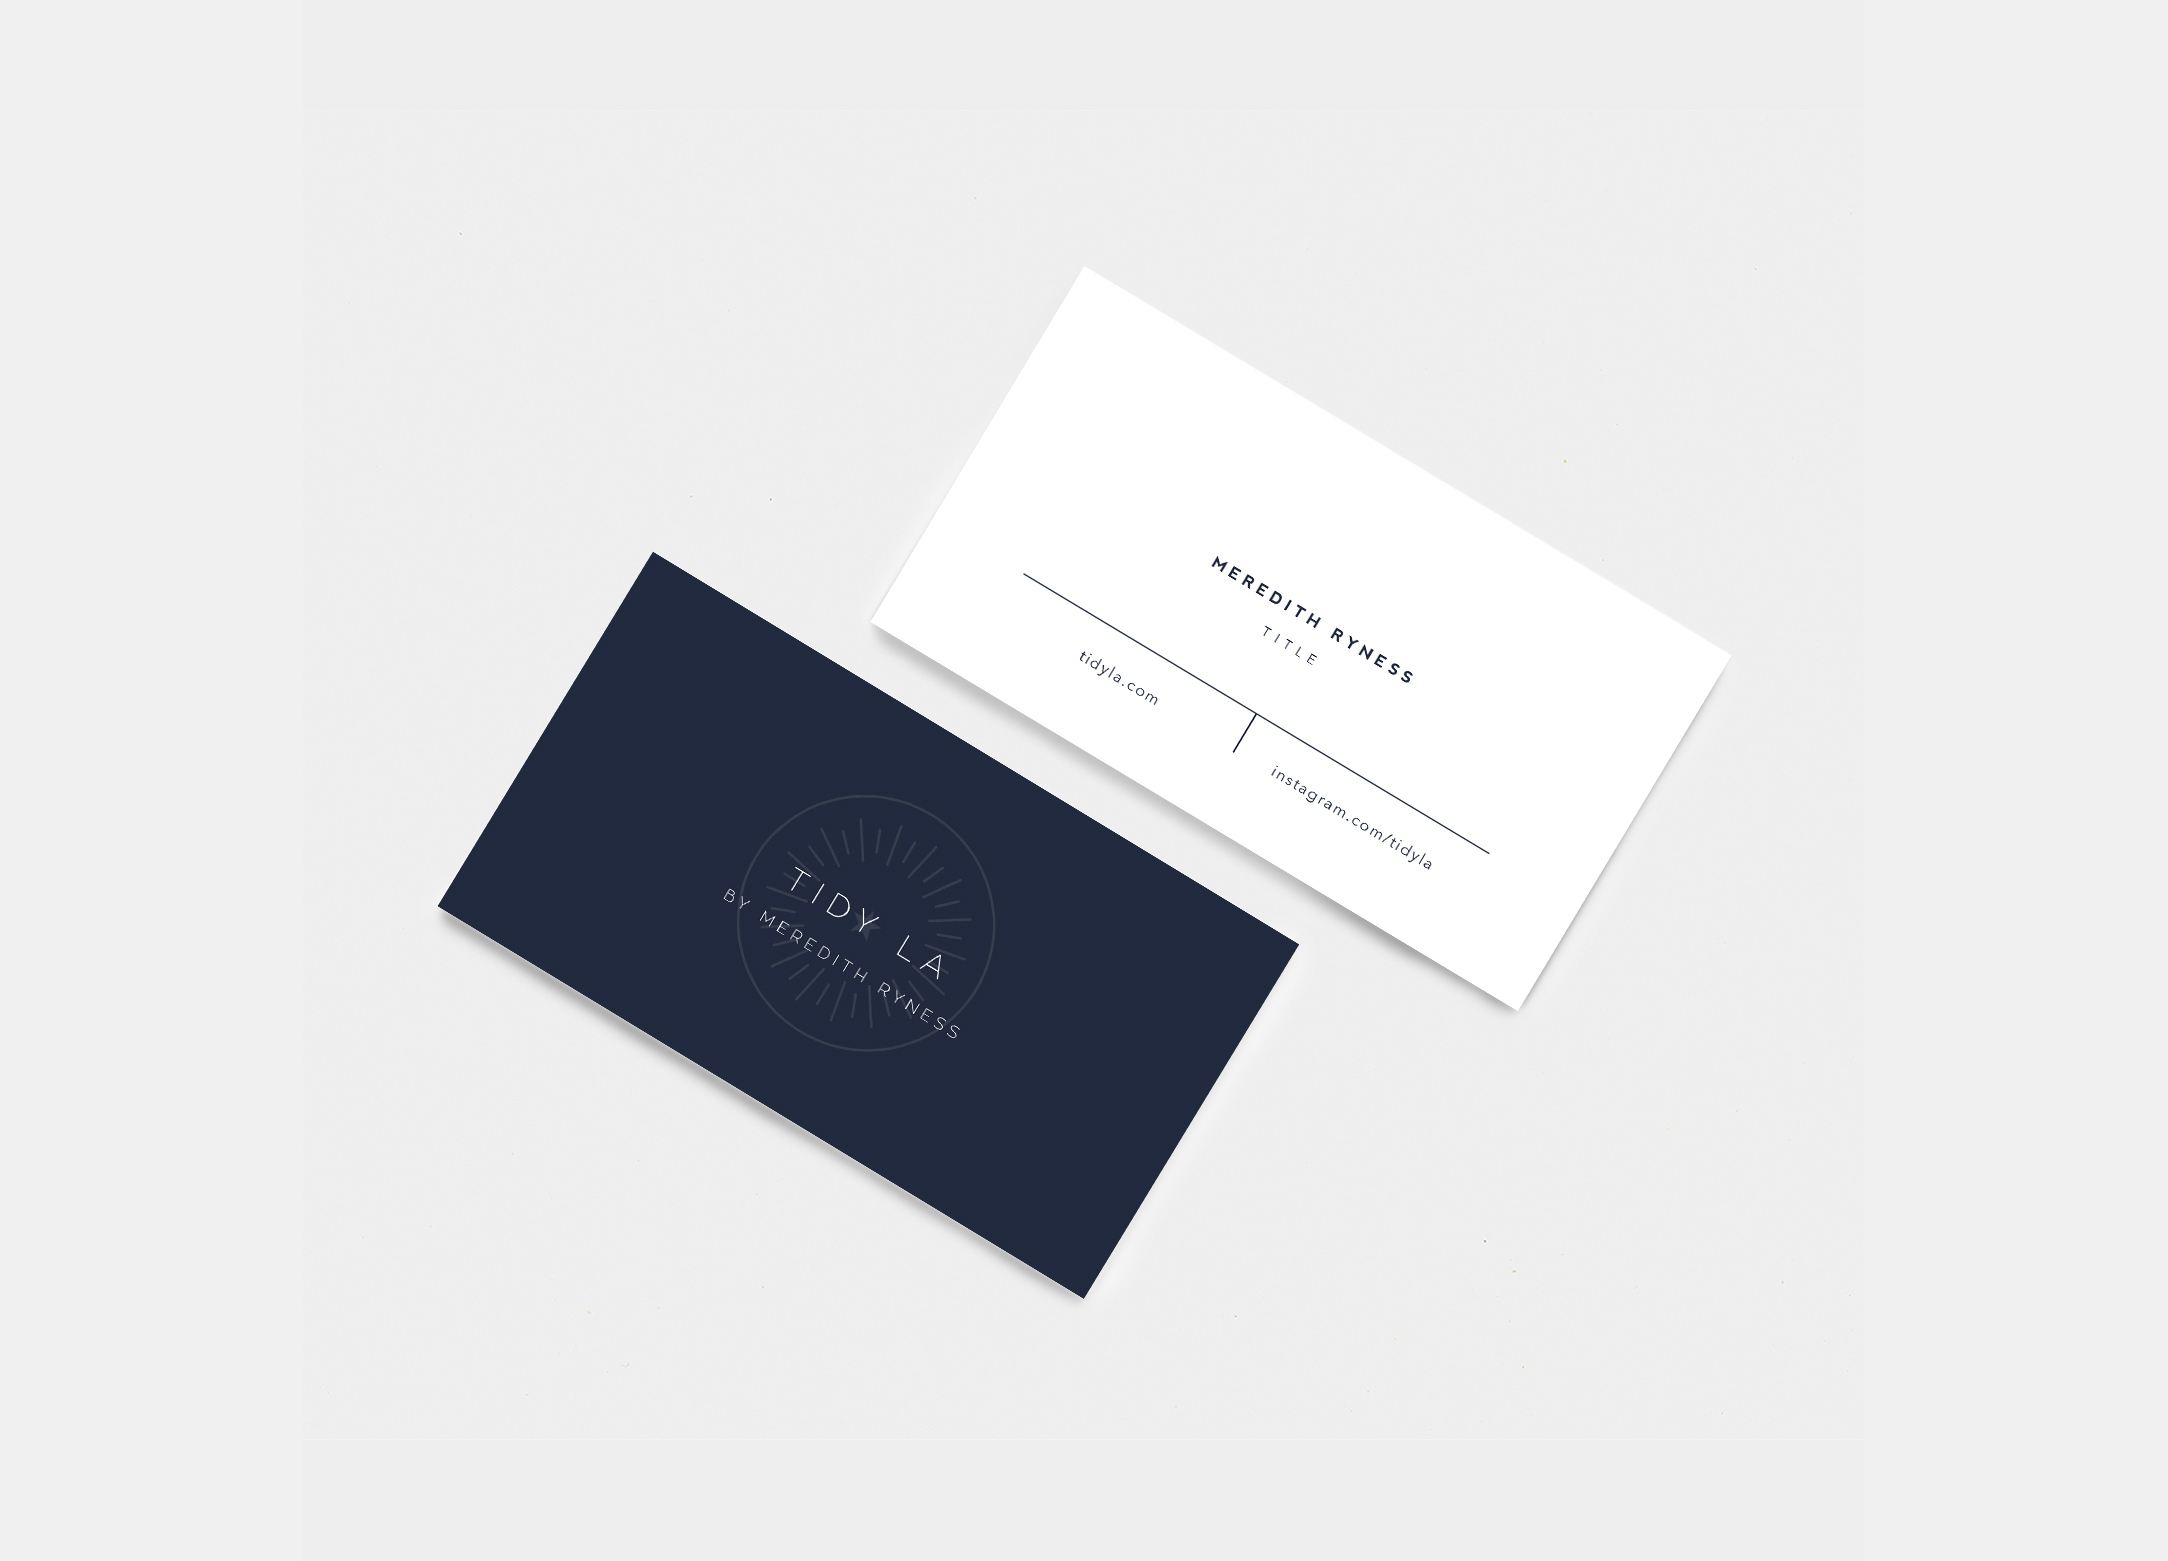 04 CANOPY_Tidy LA by Meredith Ryness_Business Card Design_Detail.jpg